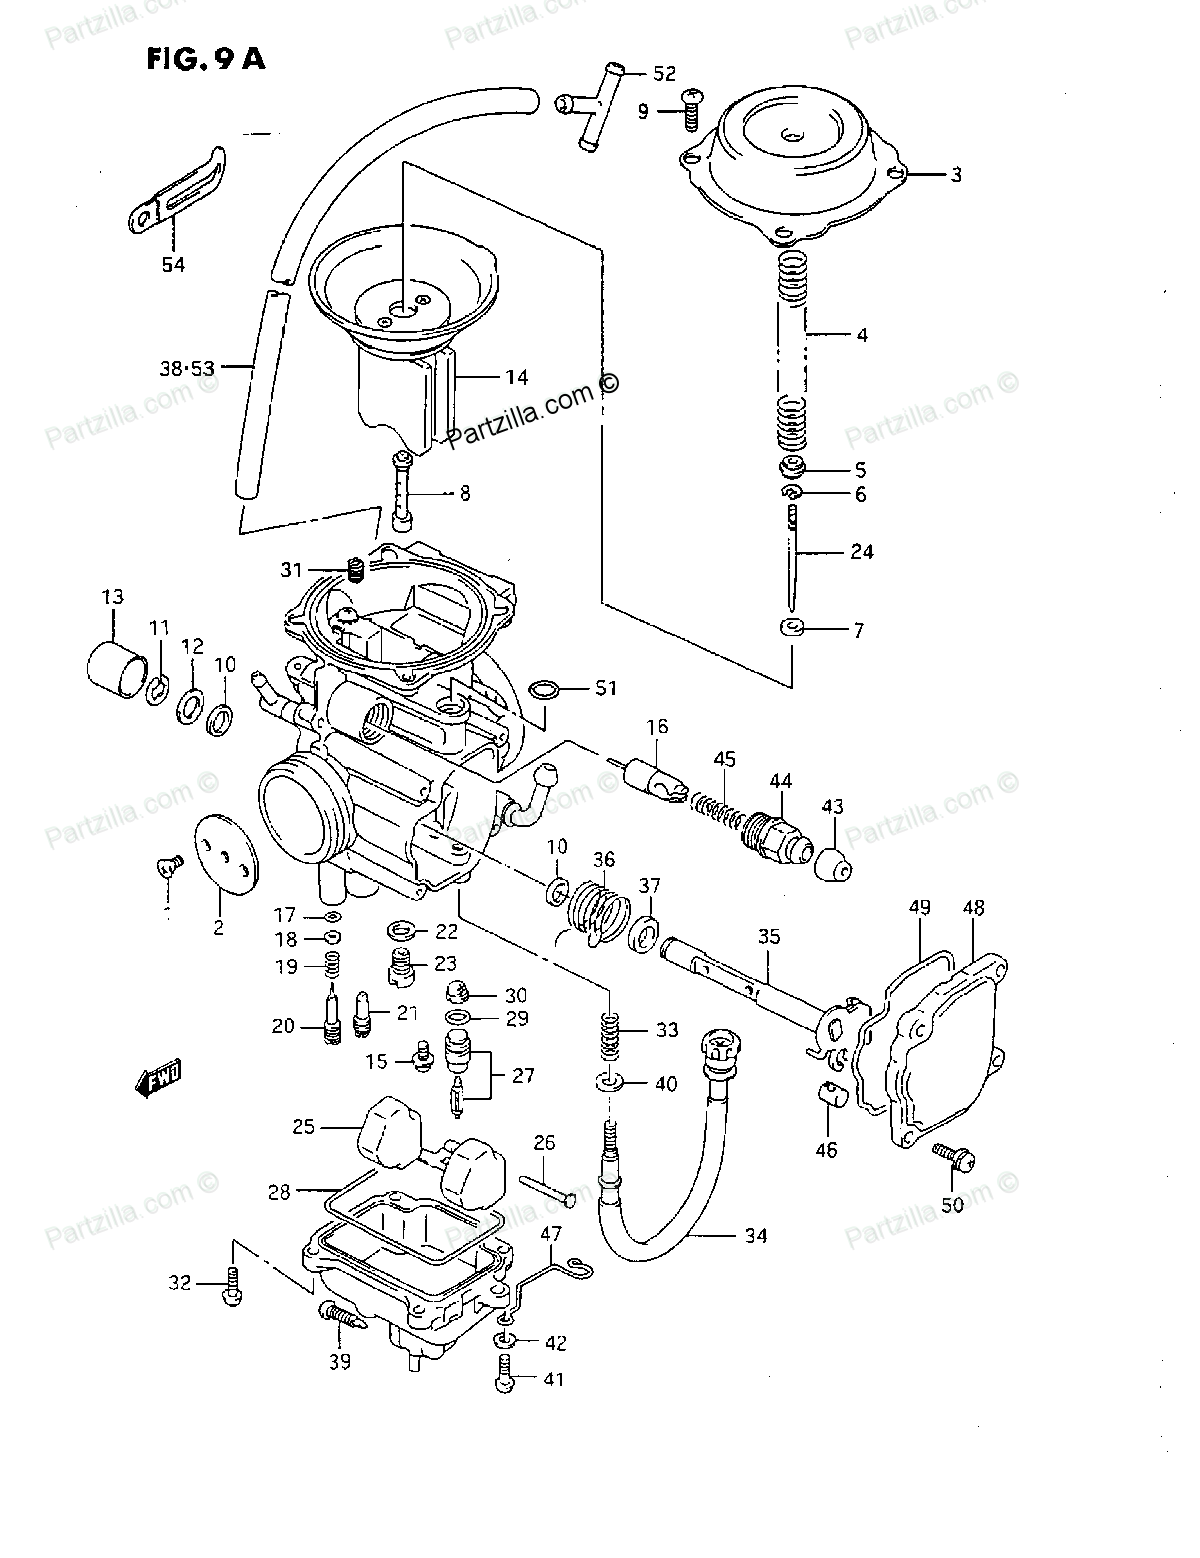 2006 Suzuki Gsxr 750 Ignition Wiring Diagram: Generous Suzuki Gsx R 600 Wire Diagram Photos - Electrical and rh:thetada.com,Design